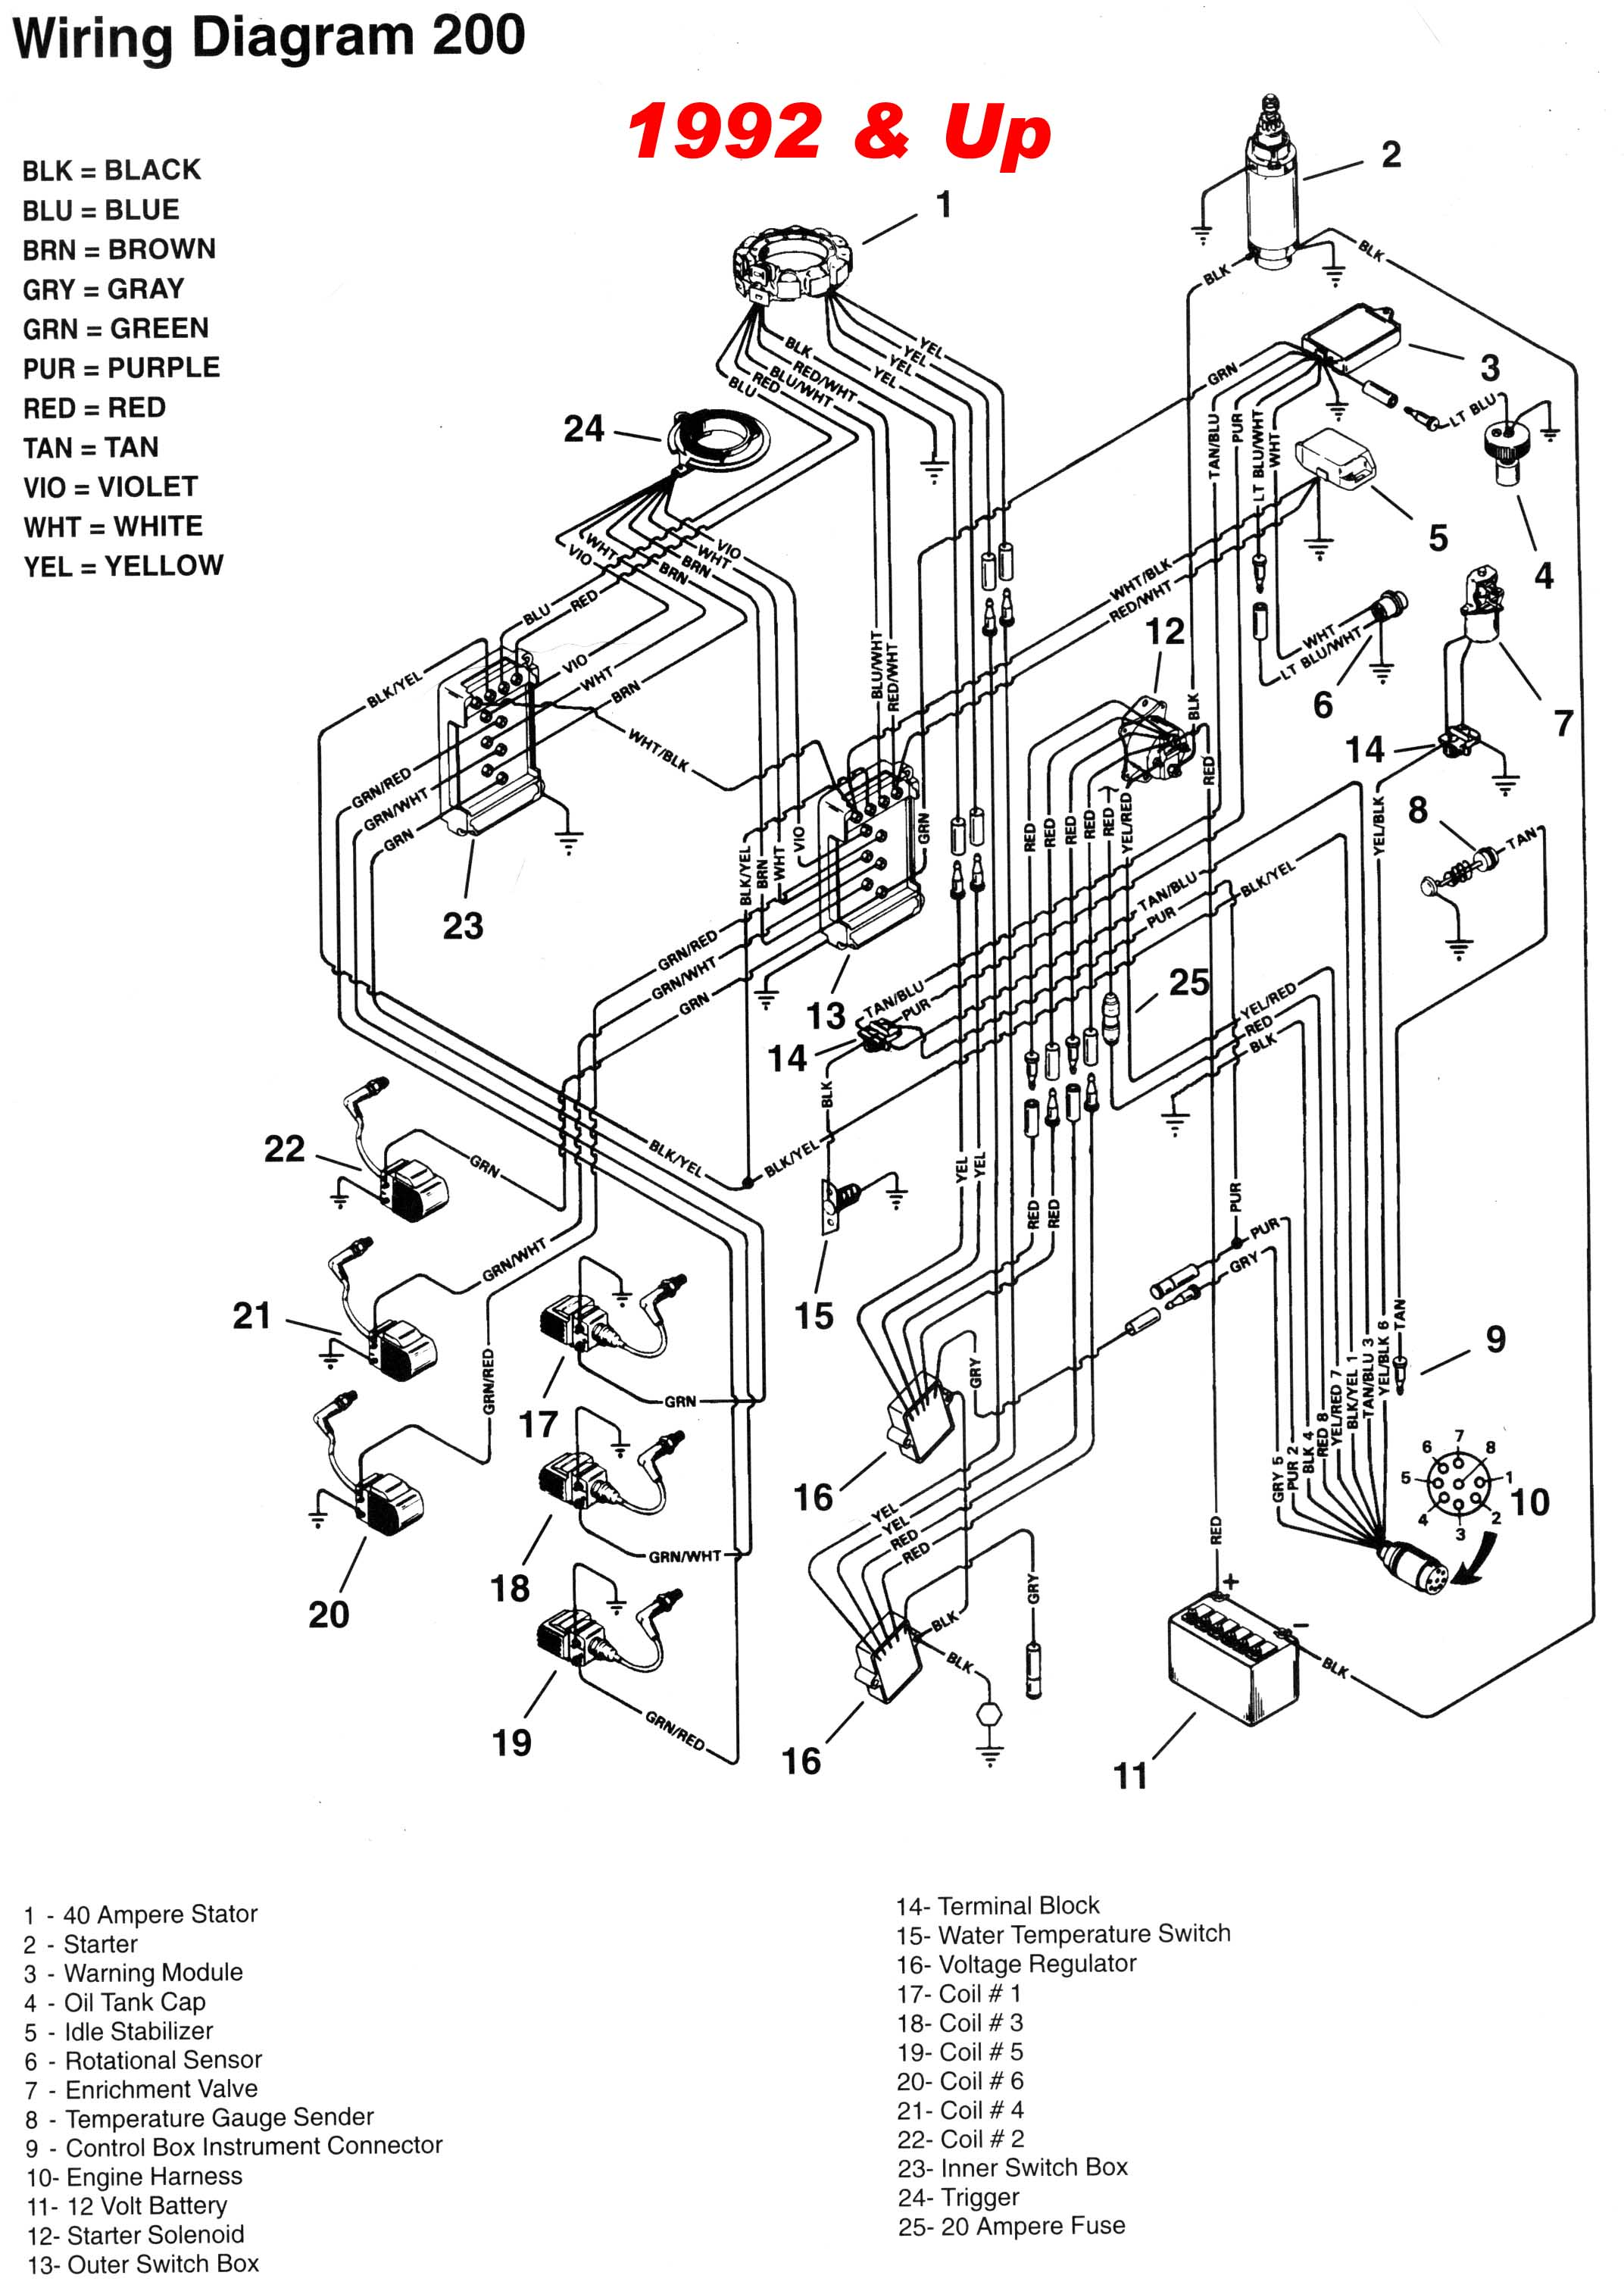 mercury_92up_200_wiring mercury outboard 2 5 and 3 0l v6 and gearcase faq Yamaha 150 Outboard Wiring Diagram at gsmx.co